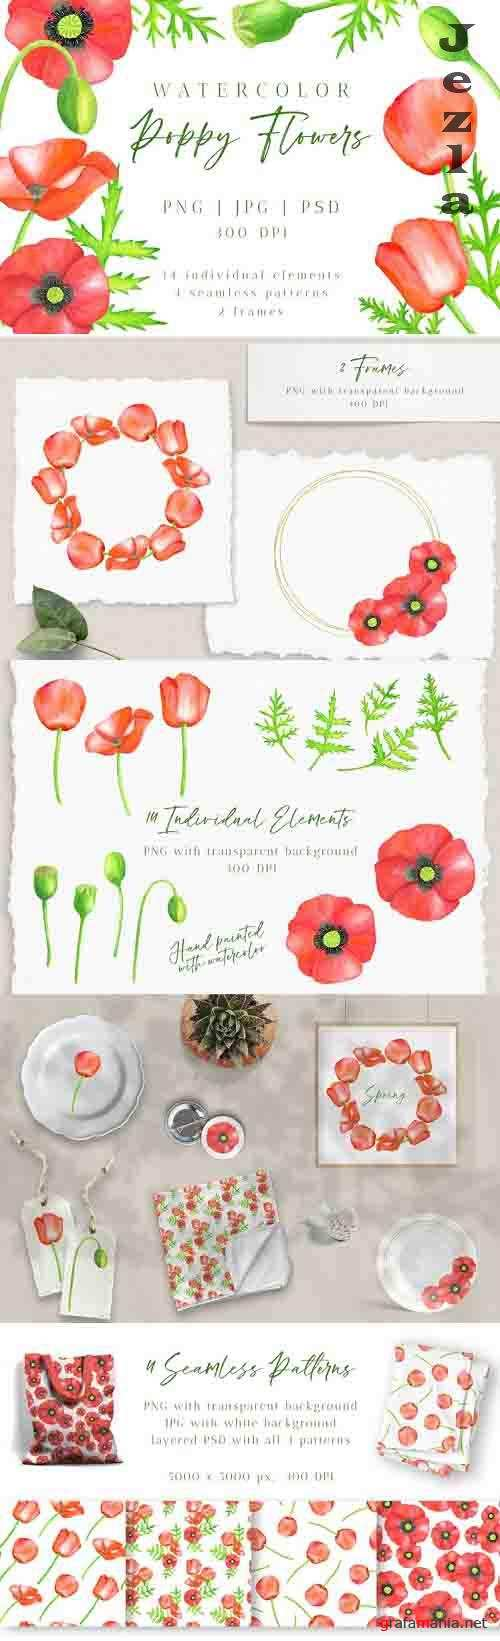 Red Poppy Flowers Clipart. Watercolor Floral PNG Collection - 1231936